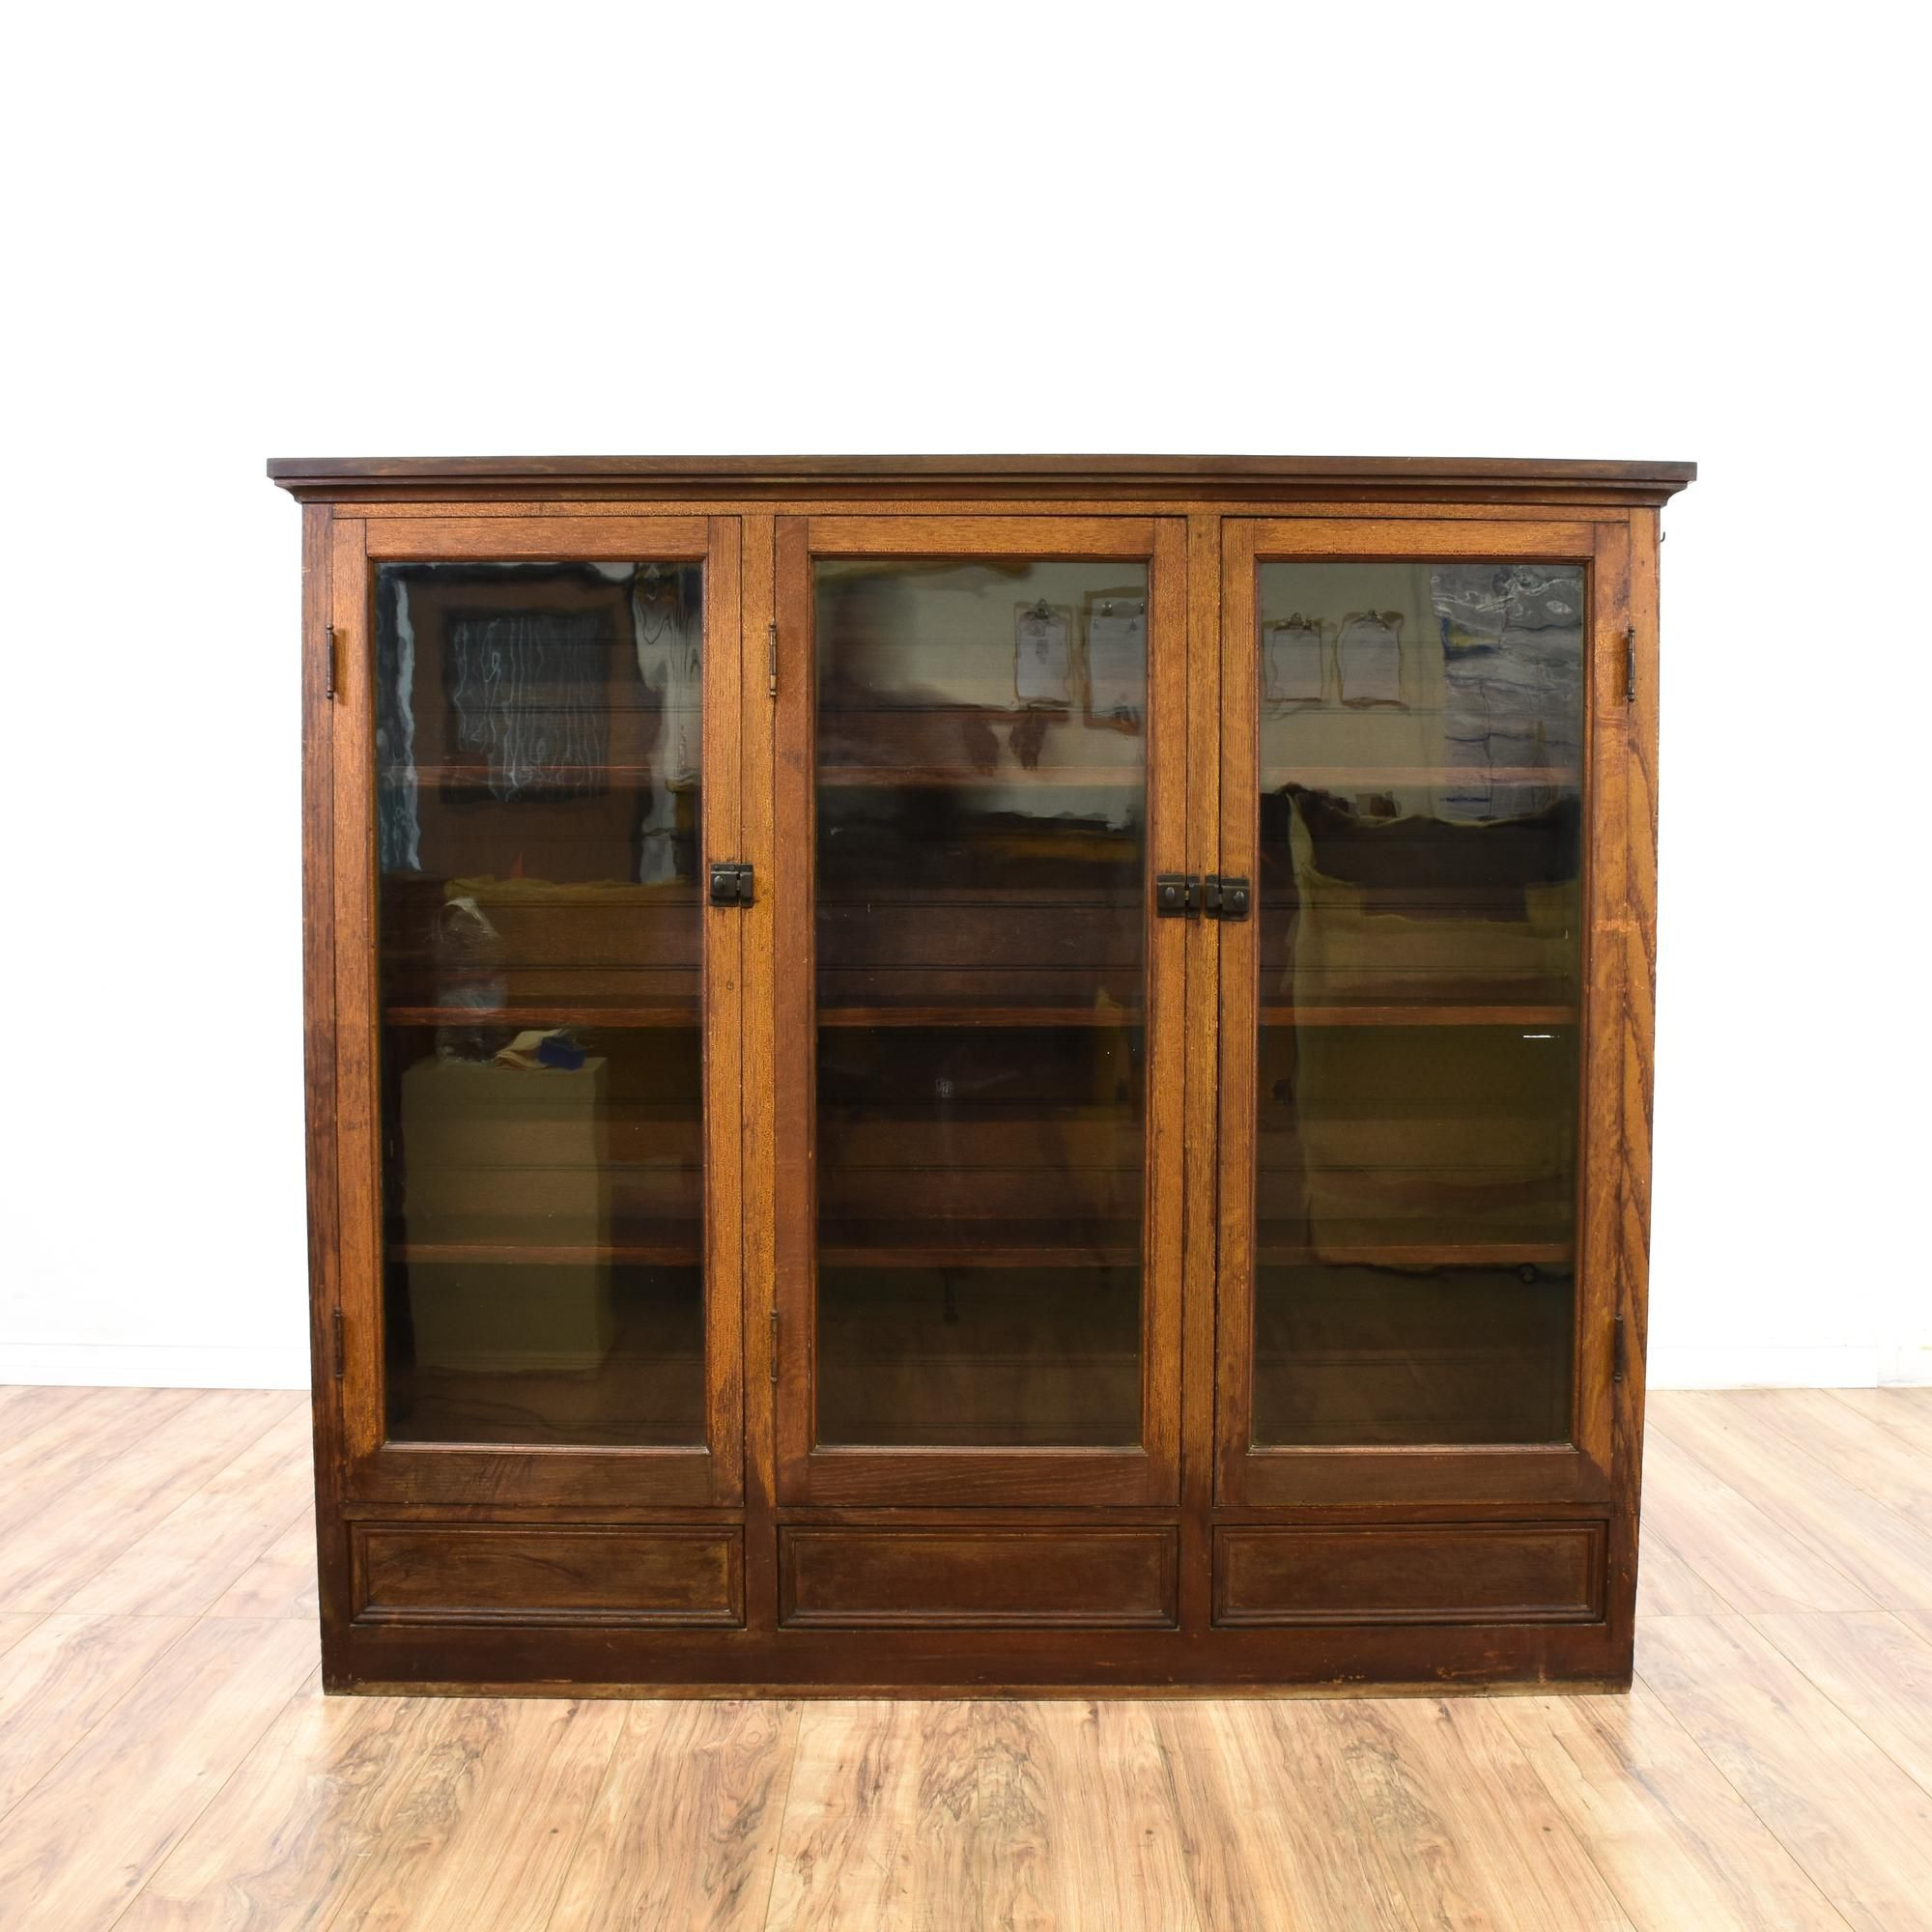 This Display Cabinet Is Featured In A Solid Wood With A Distressed